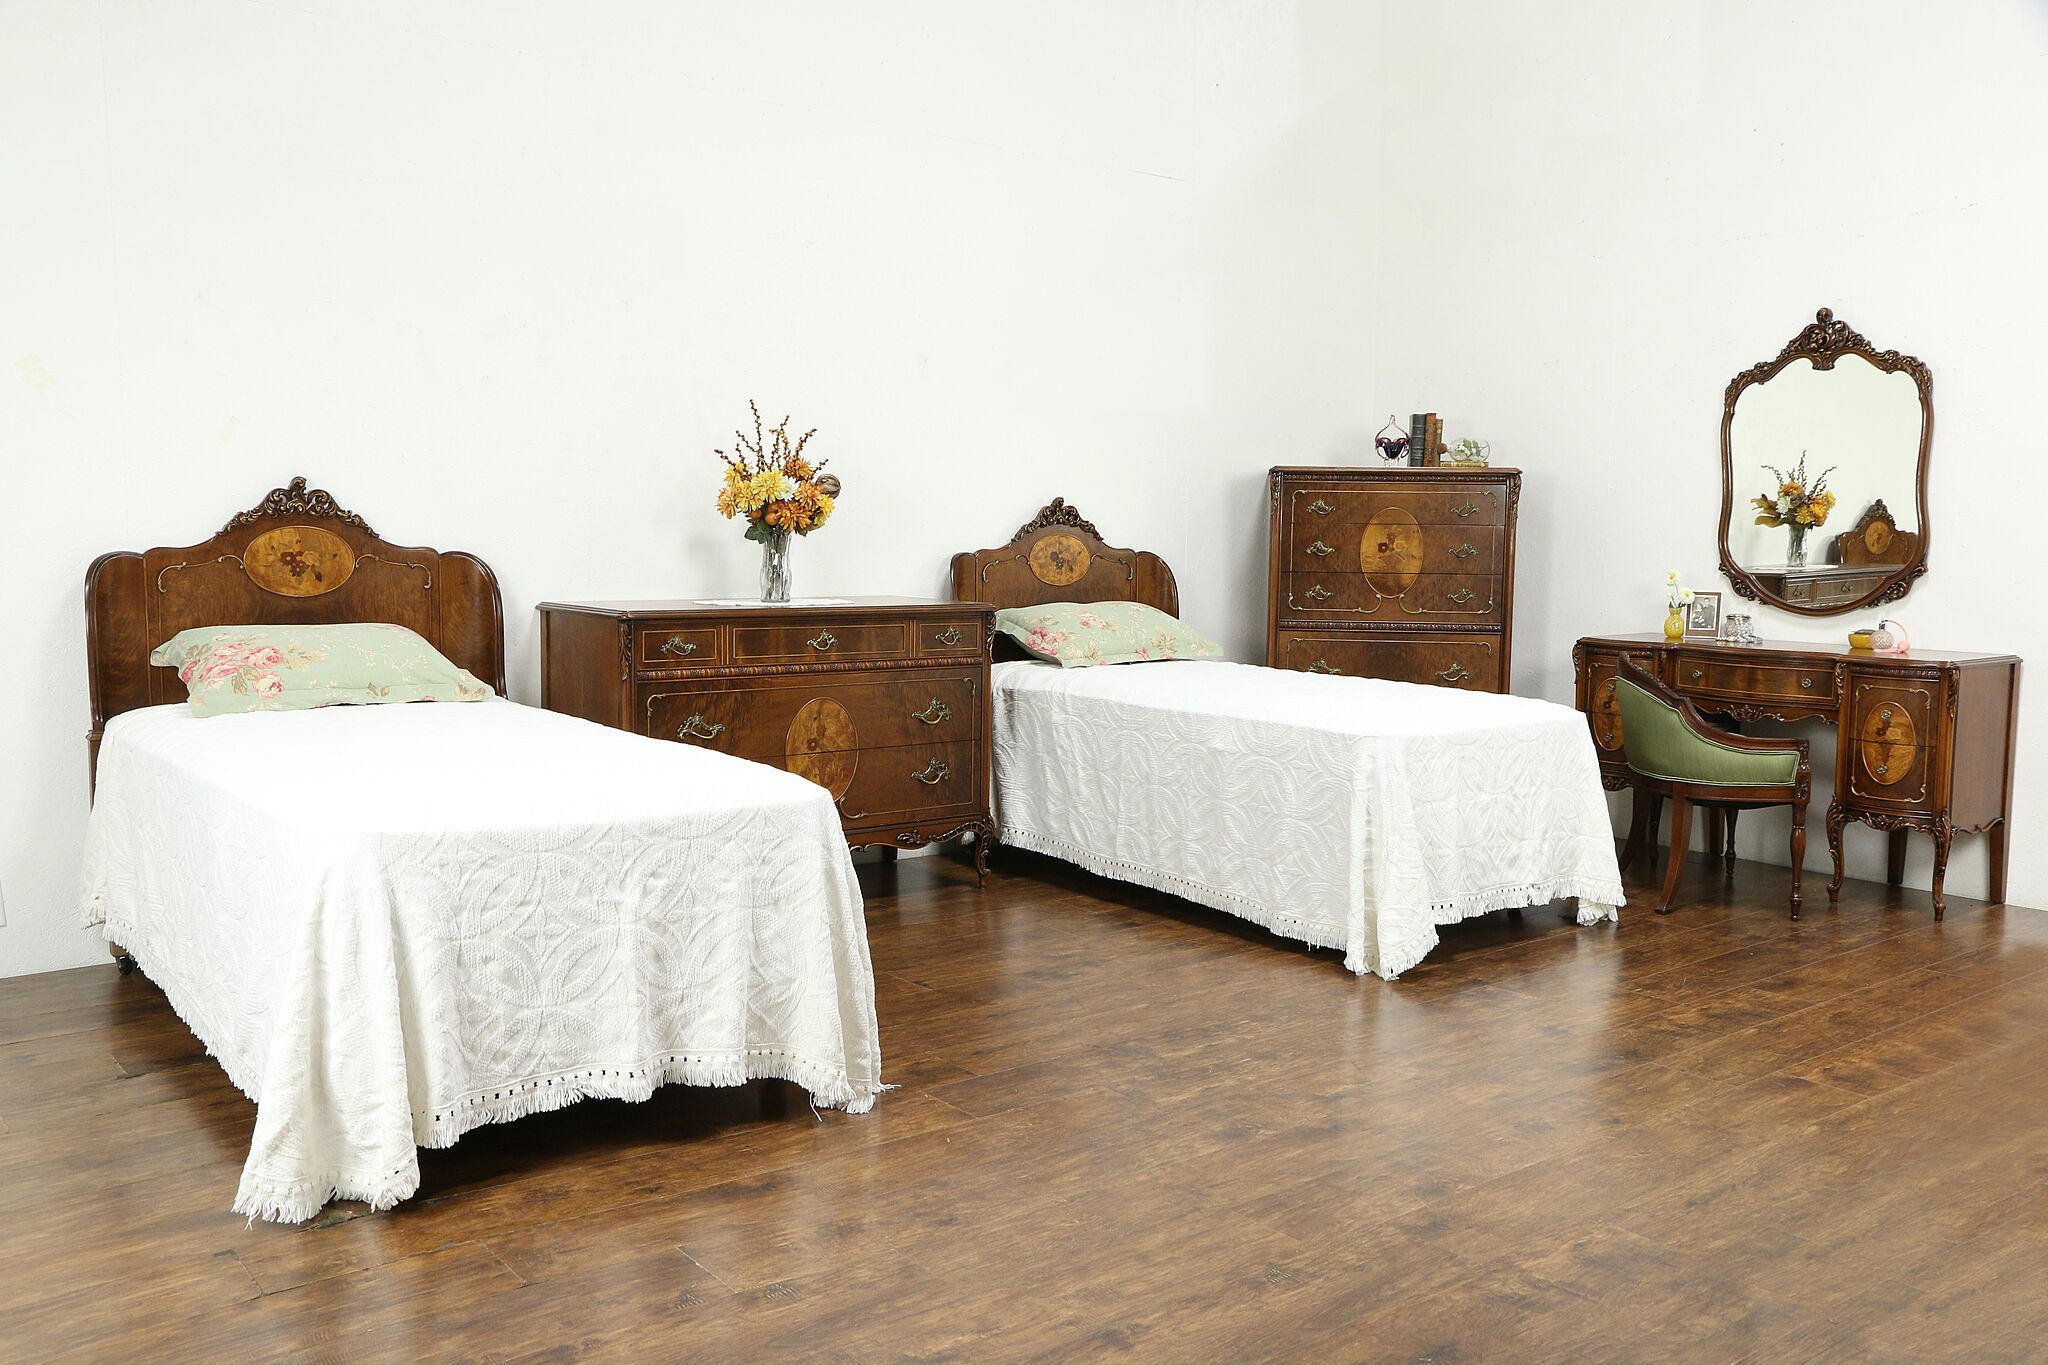 Sold French Style Vintage Carved Bedroom Set 2 Twin Beds Dresser Tall Chest 34039 Harp Gallery Antiques Furniture